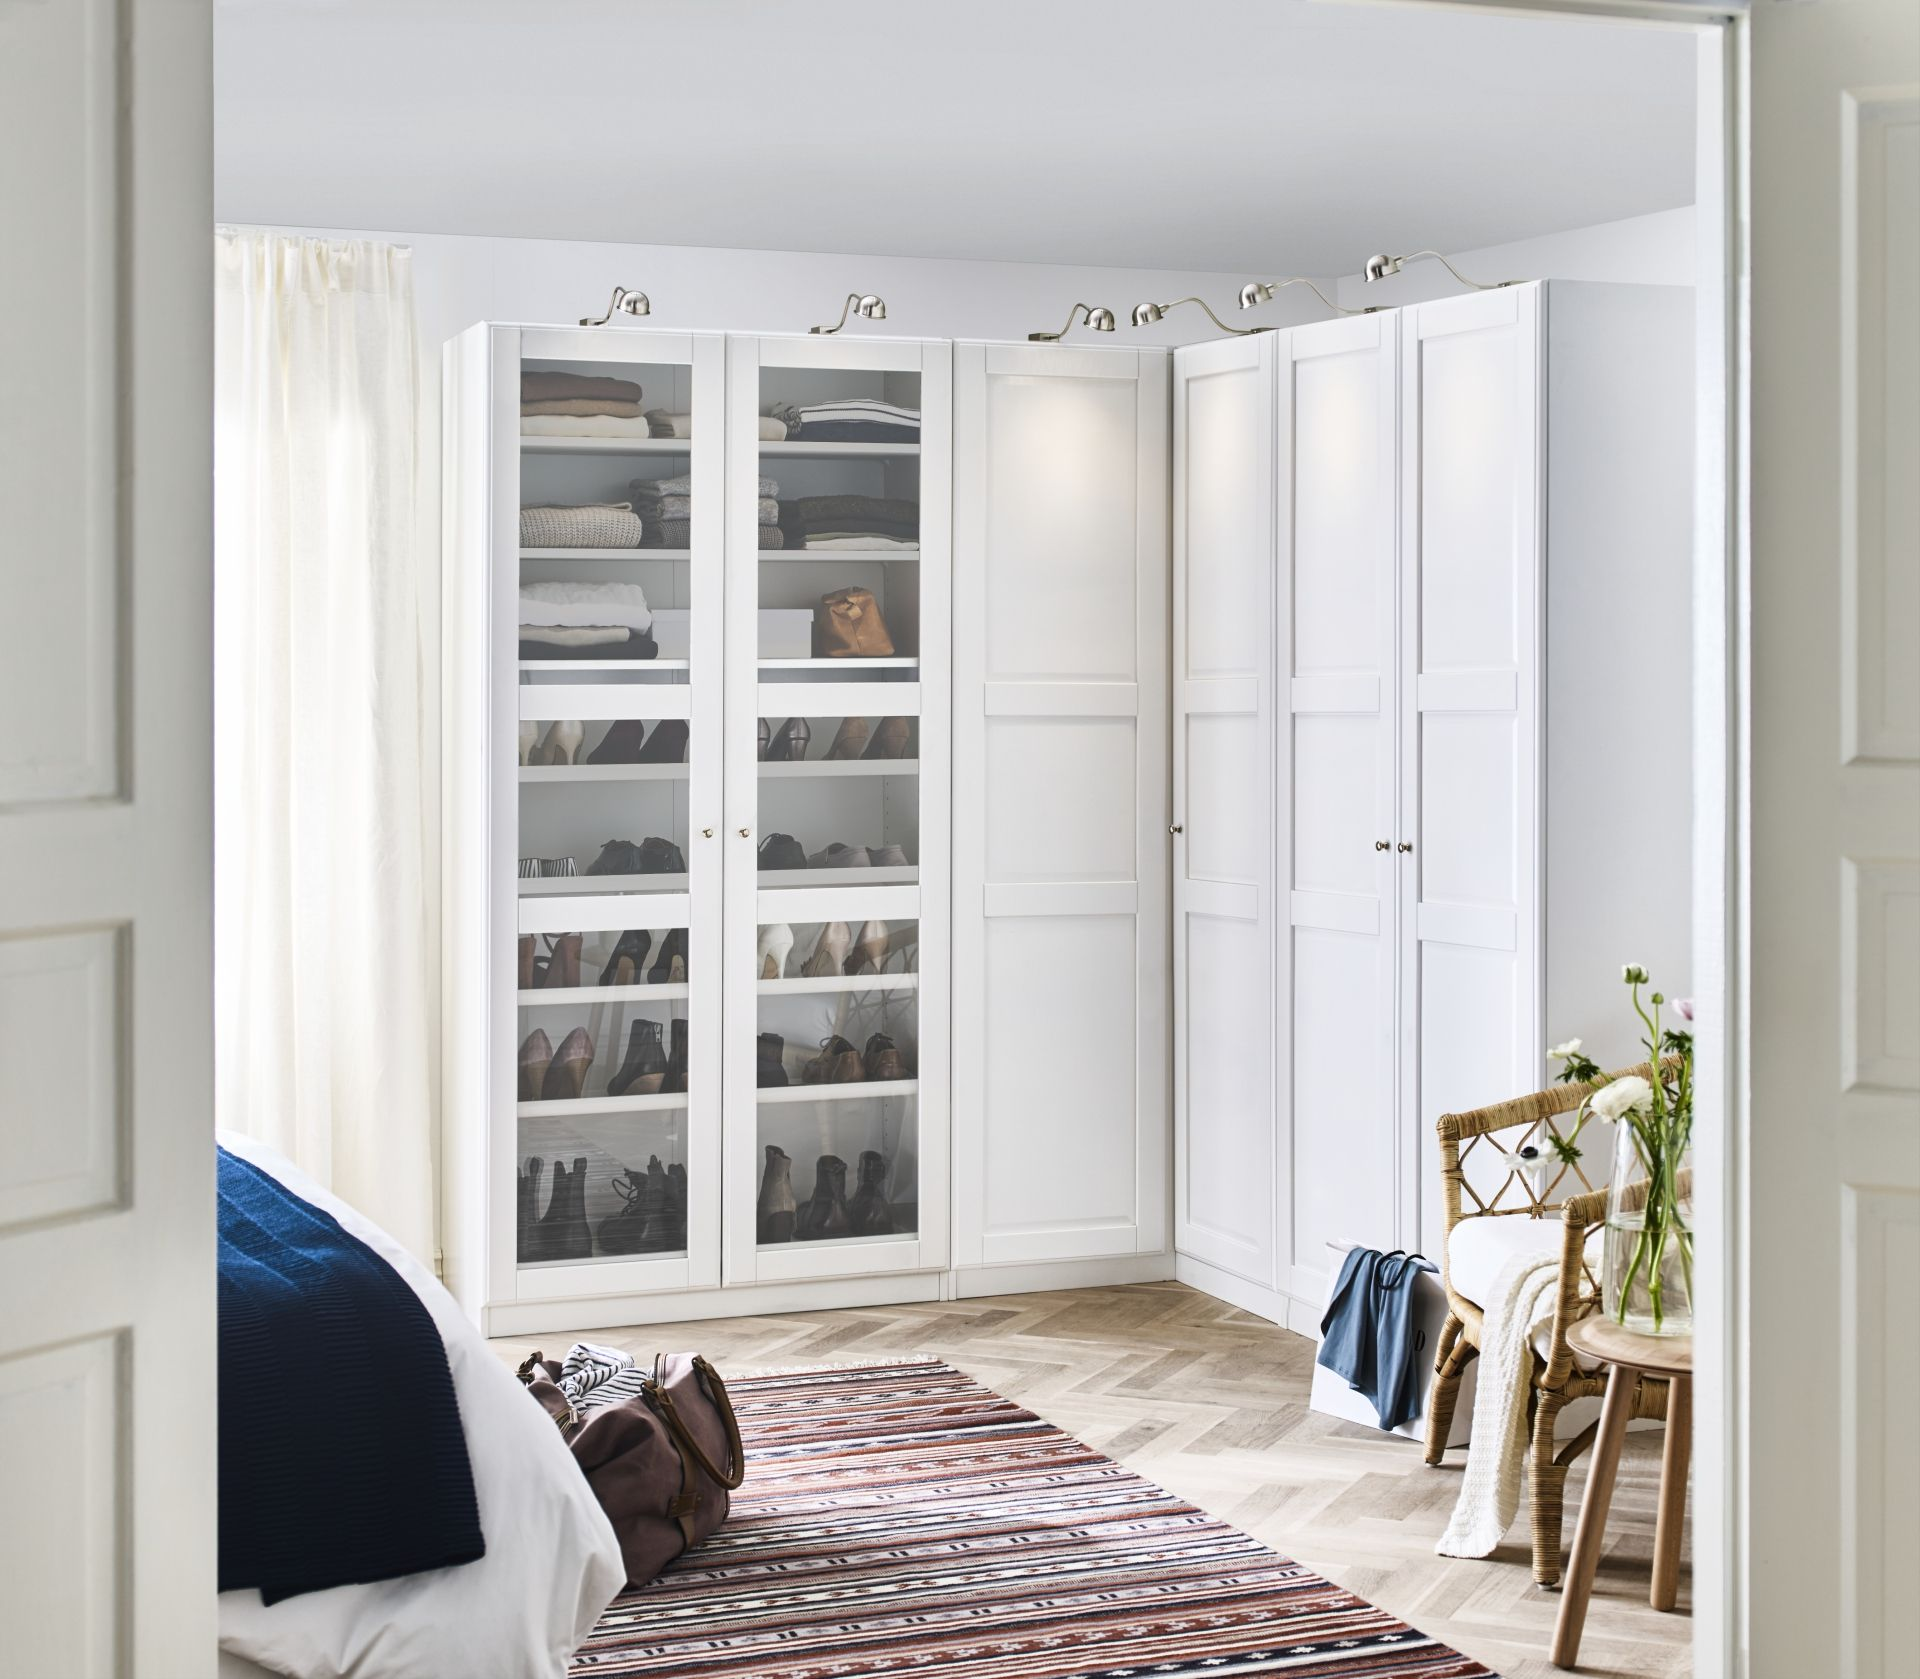 Ikea Kleding Opbergen Pax Kledingkast Wit Bergsbo Wit In 2019 Home Decor Bedroom